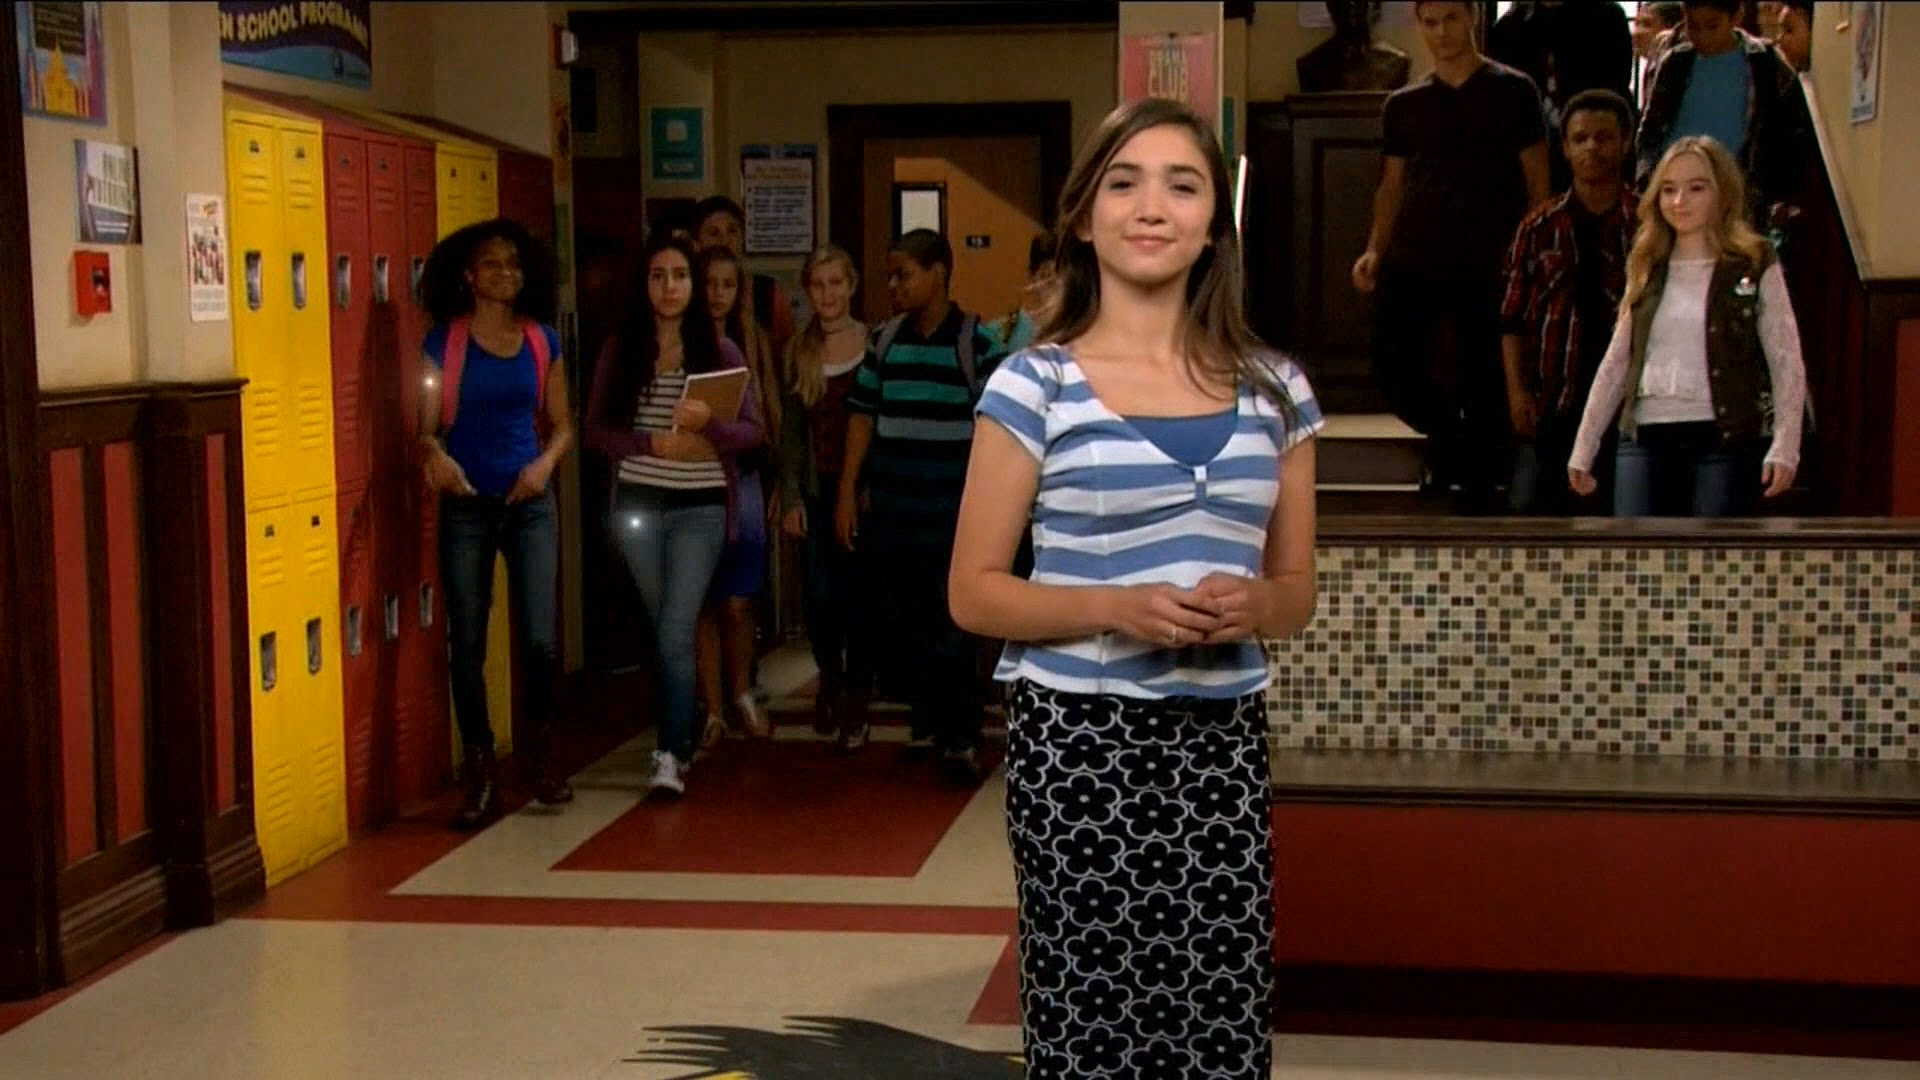 are riley and lucas dating in real life There's been a rumor floating around that maya is gay, especially with the upcoming episode titled girl meets true maya i could definitely see a situation in which lucas picks maya but then, with the latest episode about maya not being her real self, maya decides to come out and turns lucas down.